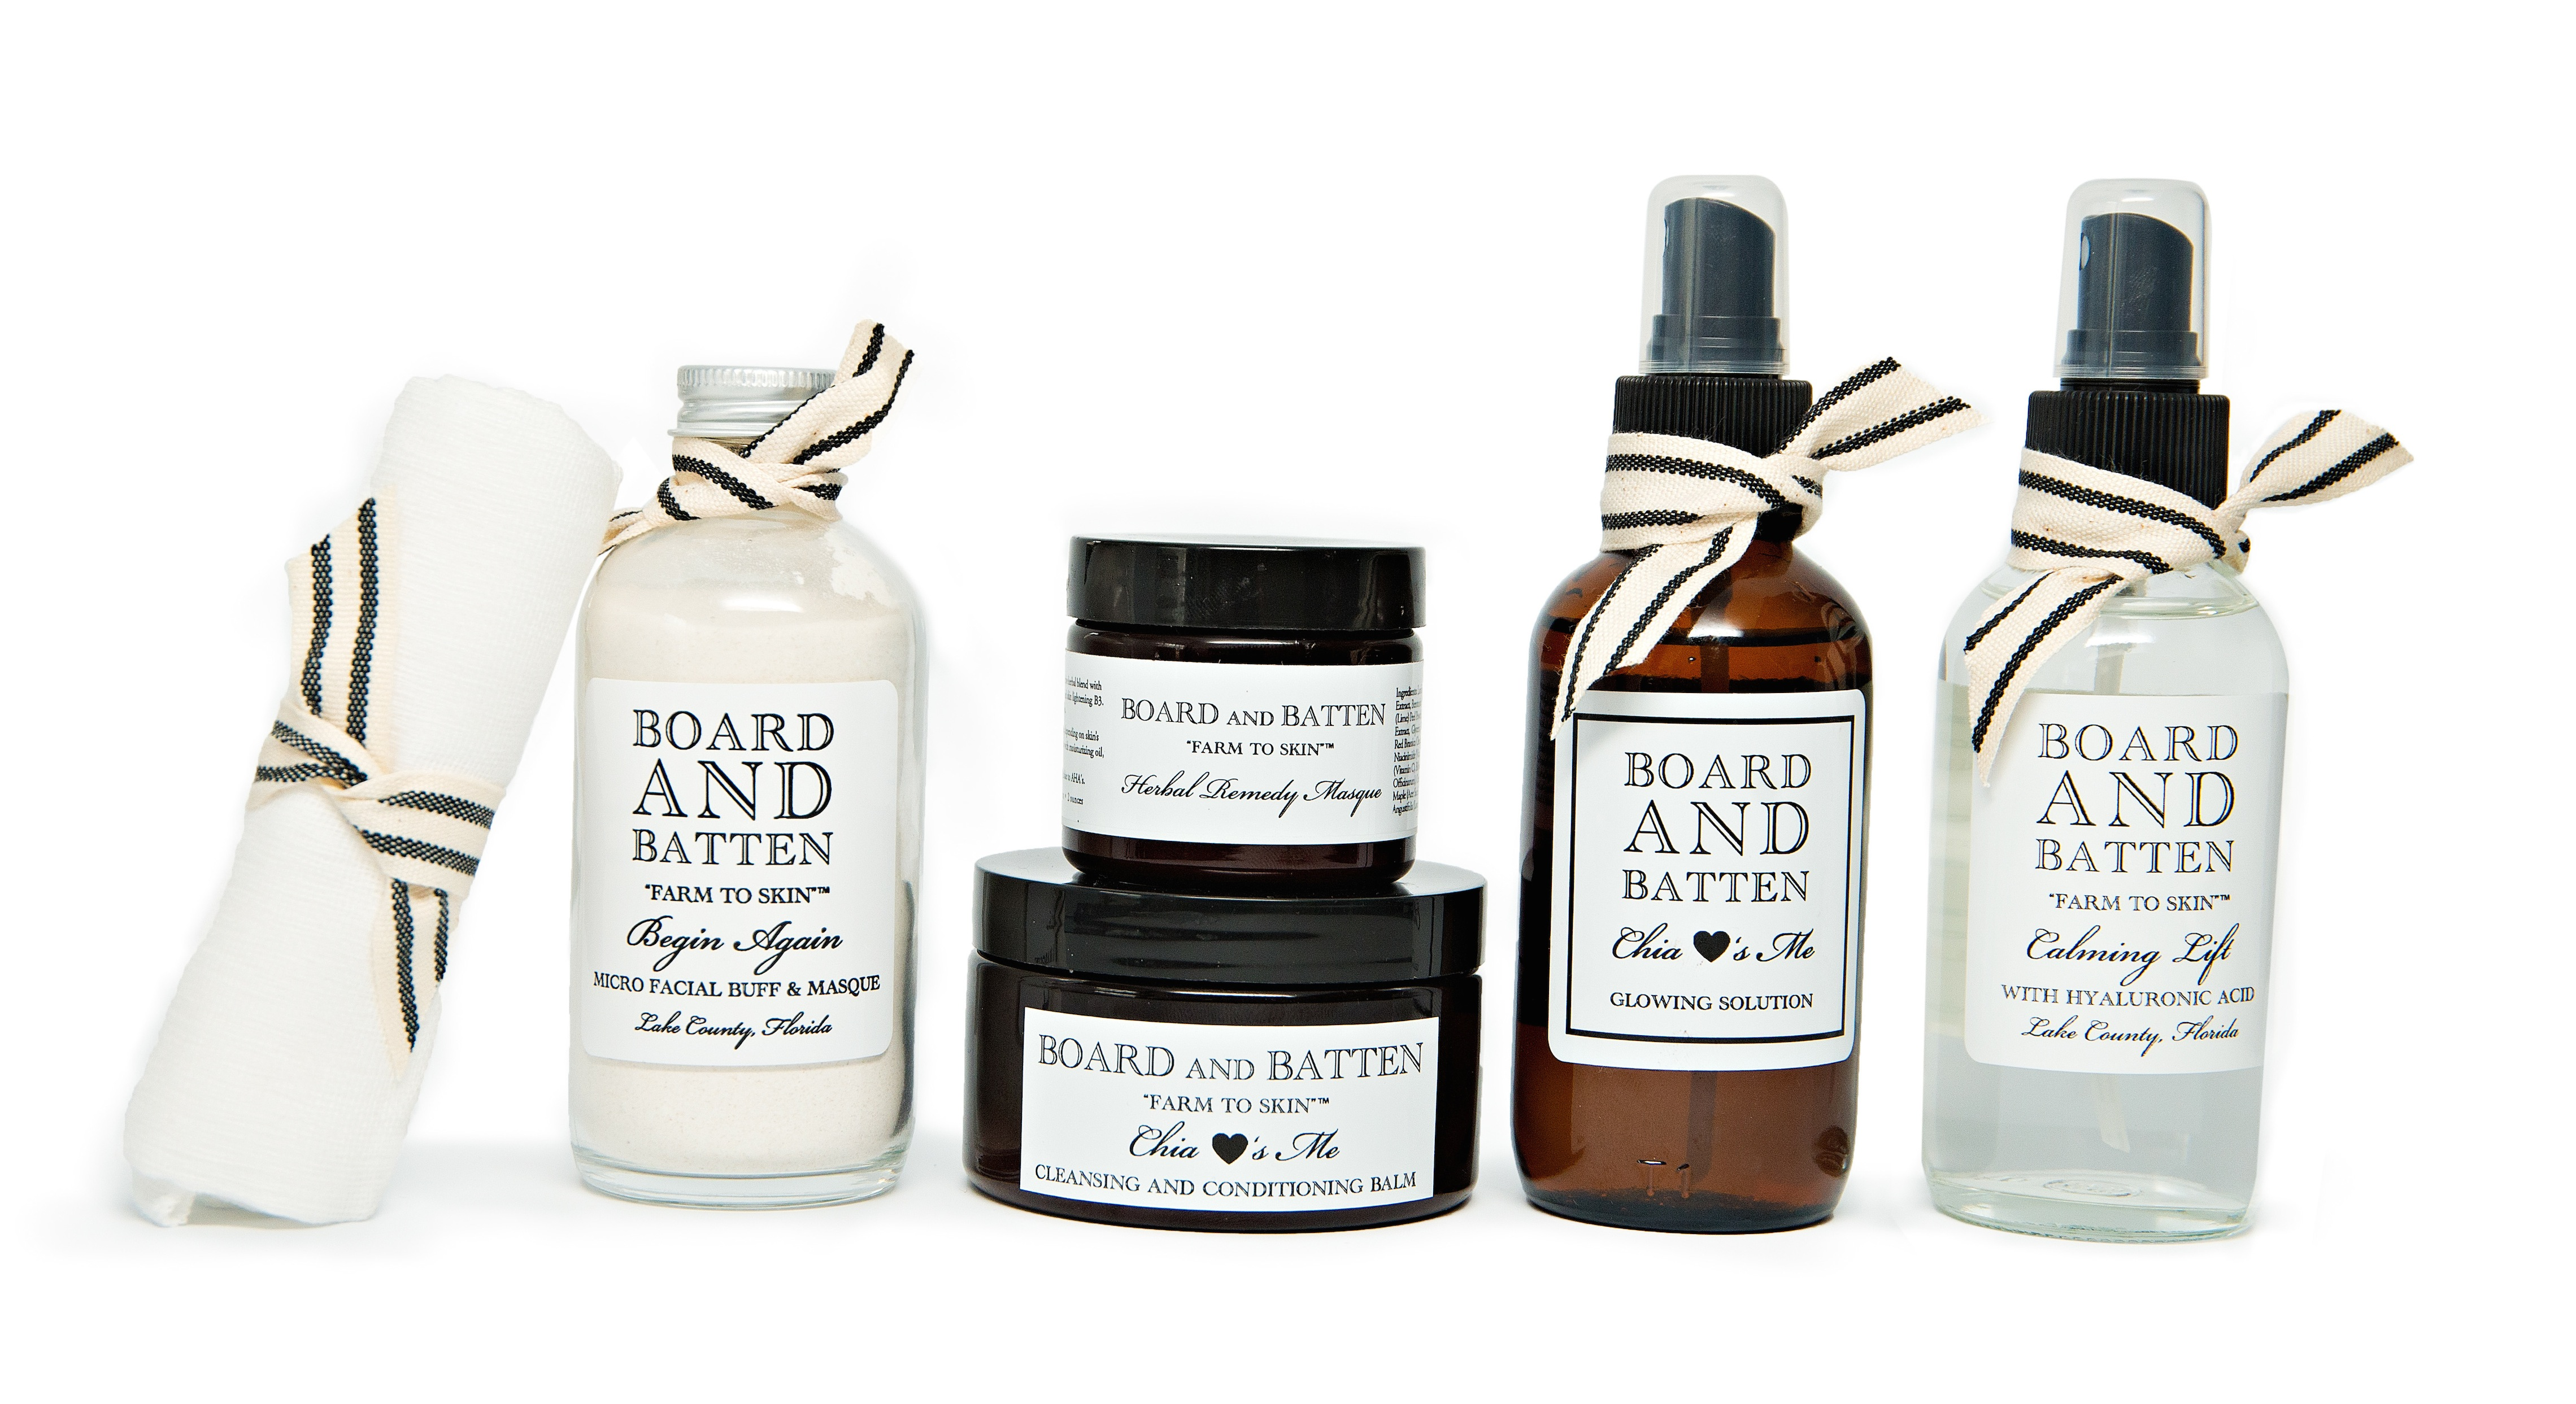 A natural skincare gift for your cosmetic junkie friend in need of rehab.